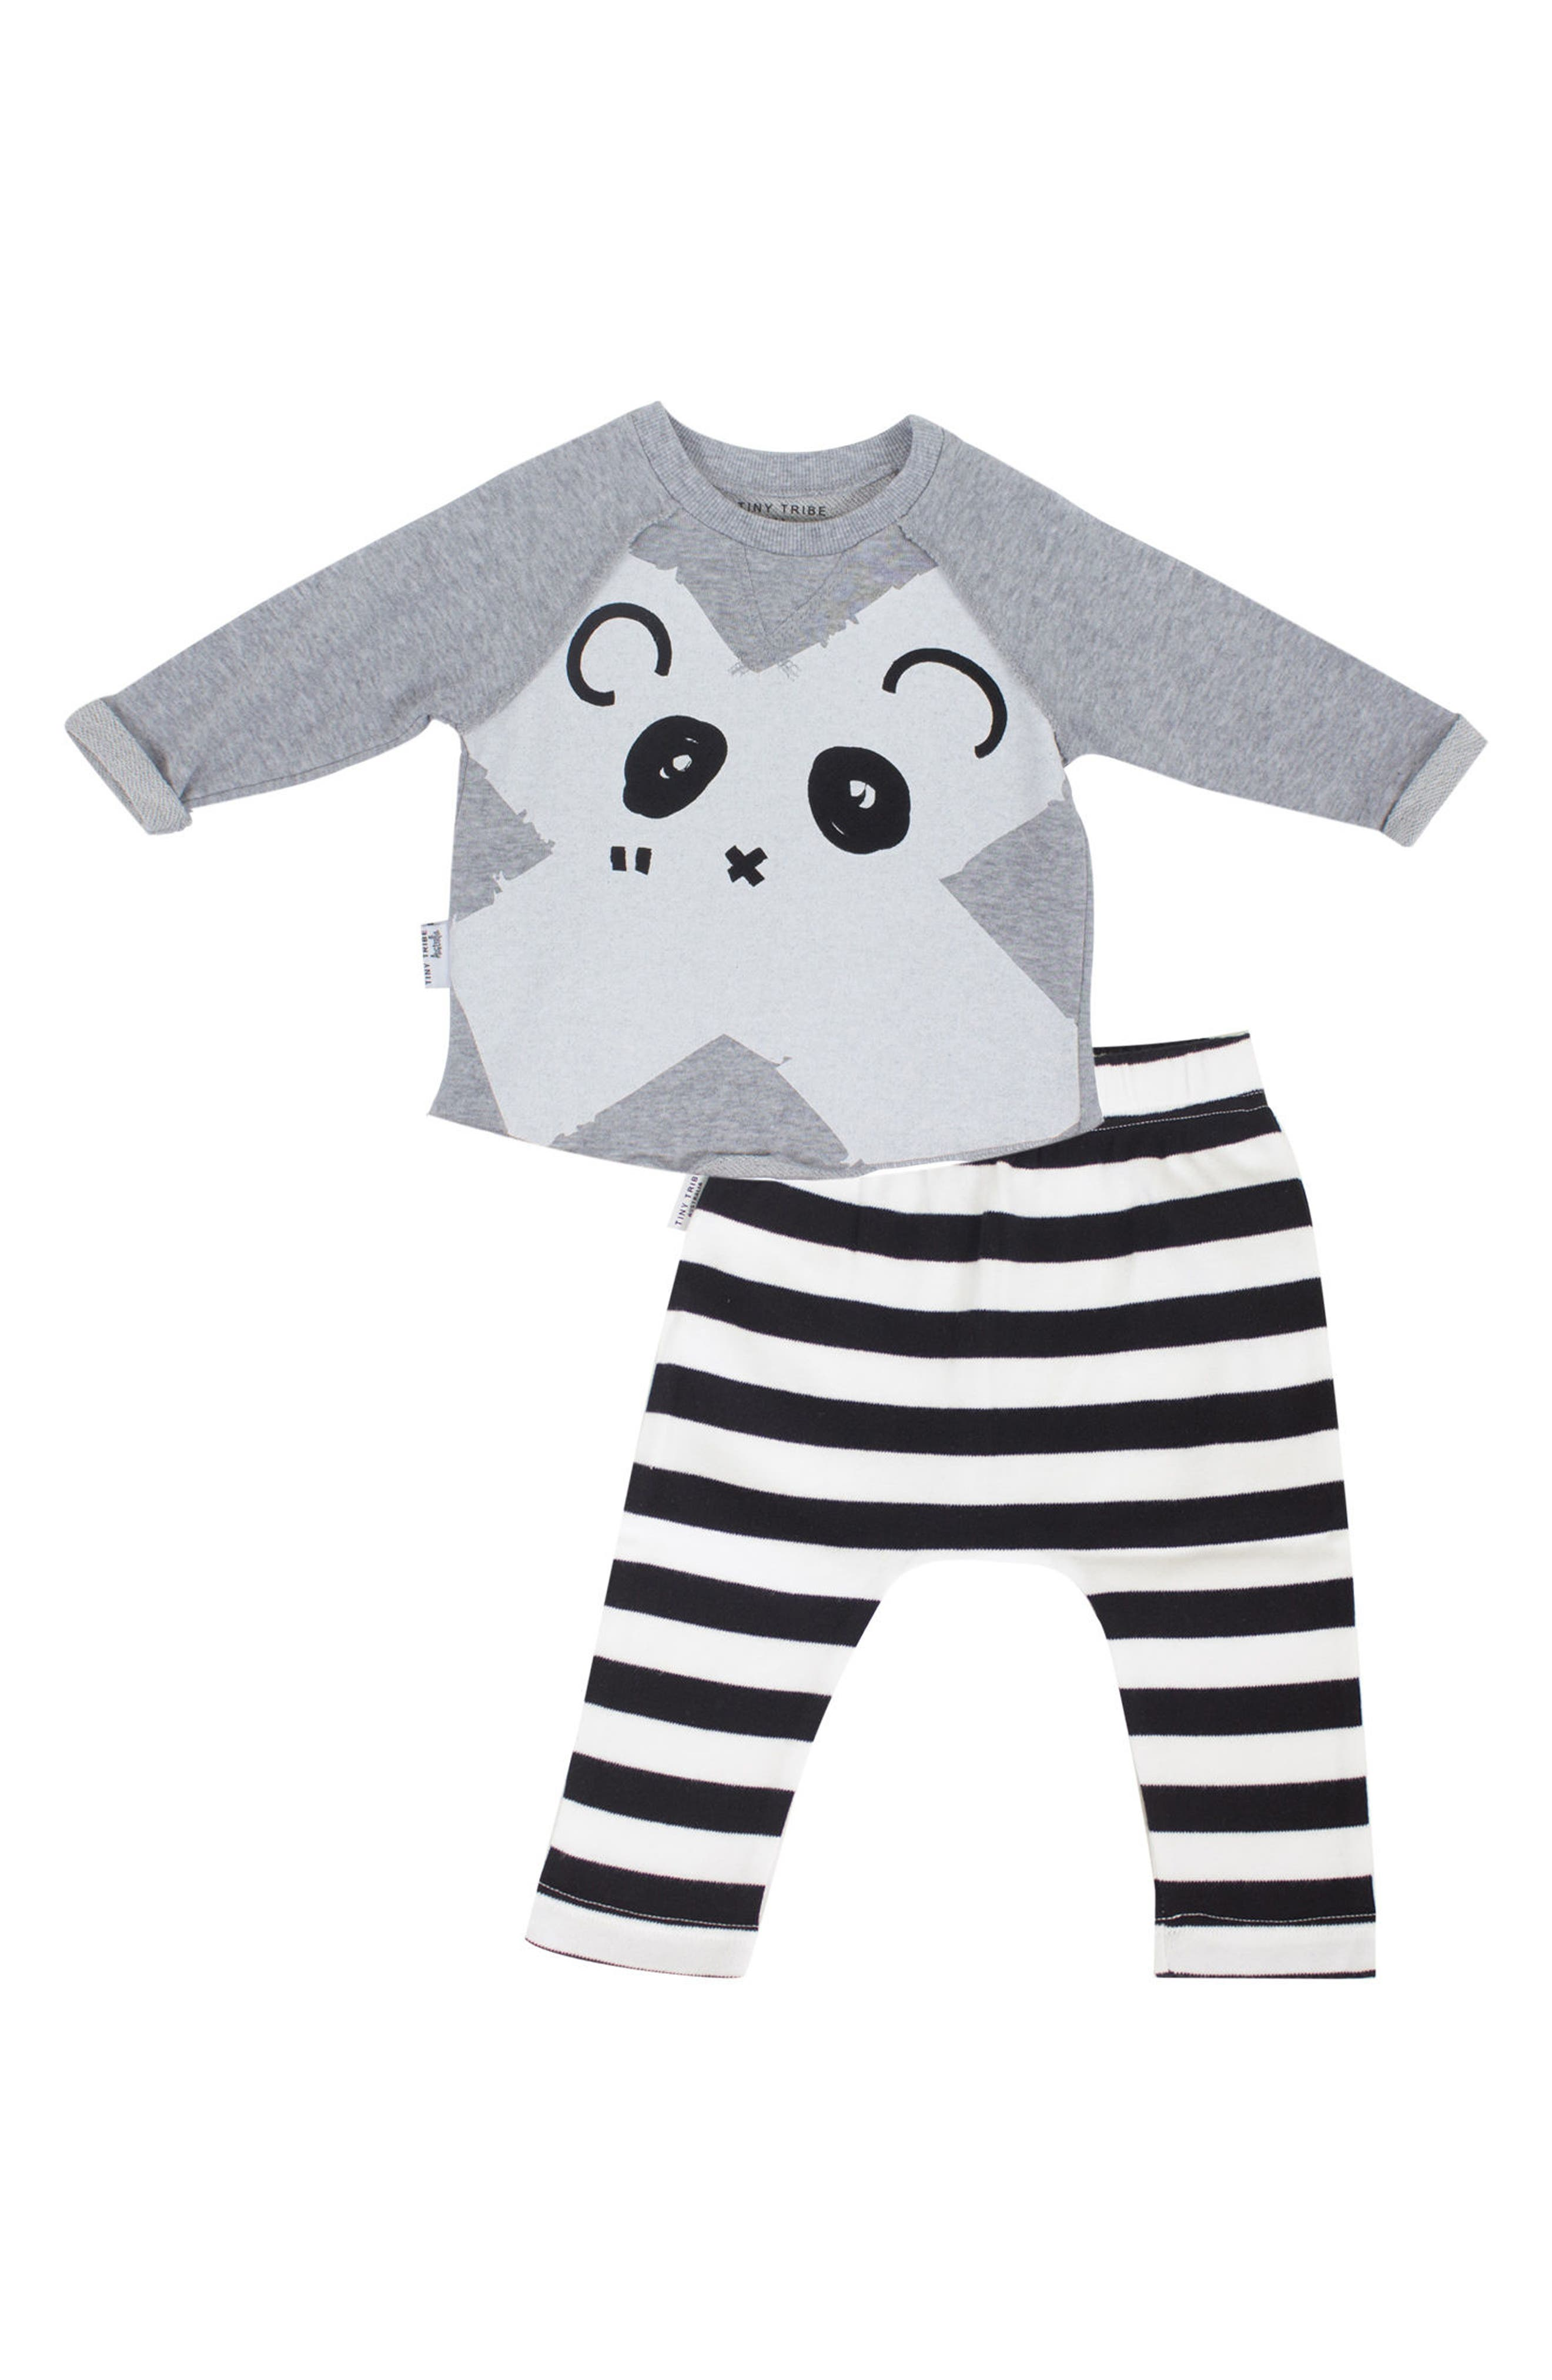 Panda Sweatshirt & Leggings Set,                         Main,                         color, Grey And Black